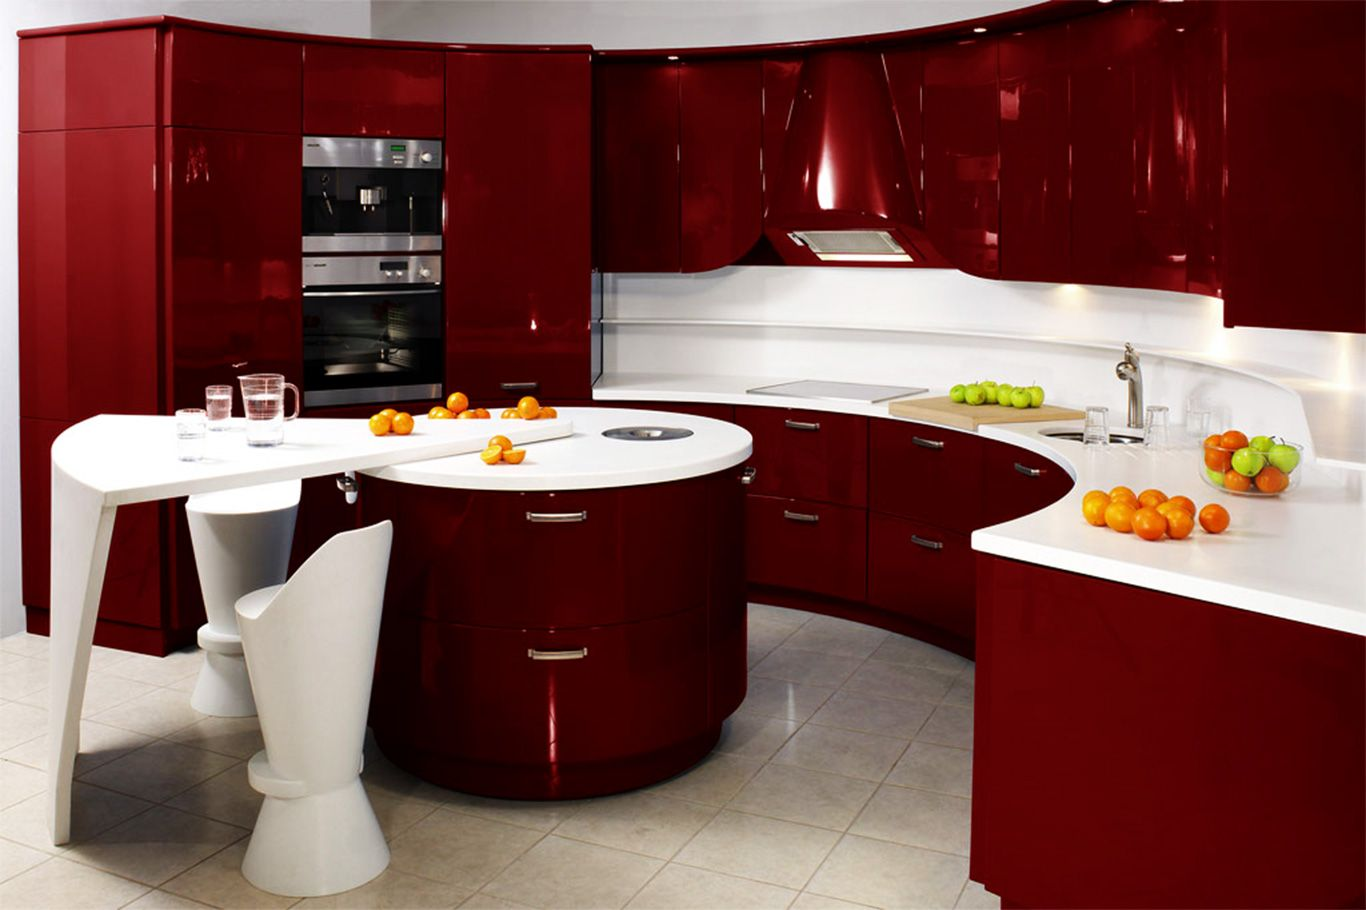 Red And Black Kitchenexquisite Red Black White Kitchen Ideas Fascinating Kitchen Design Red And Black Review